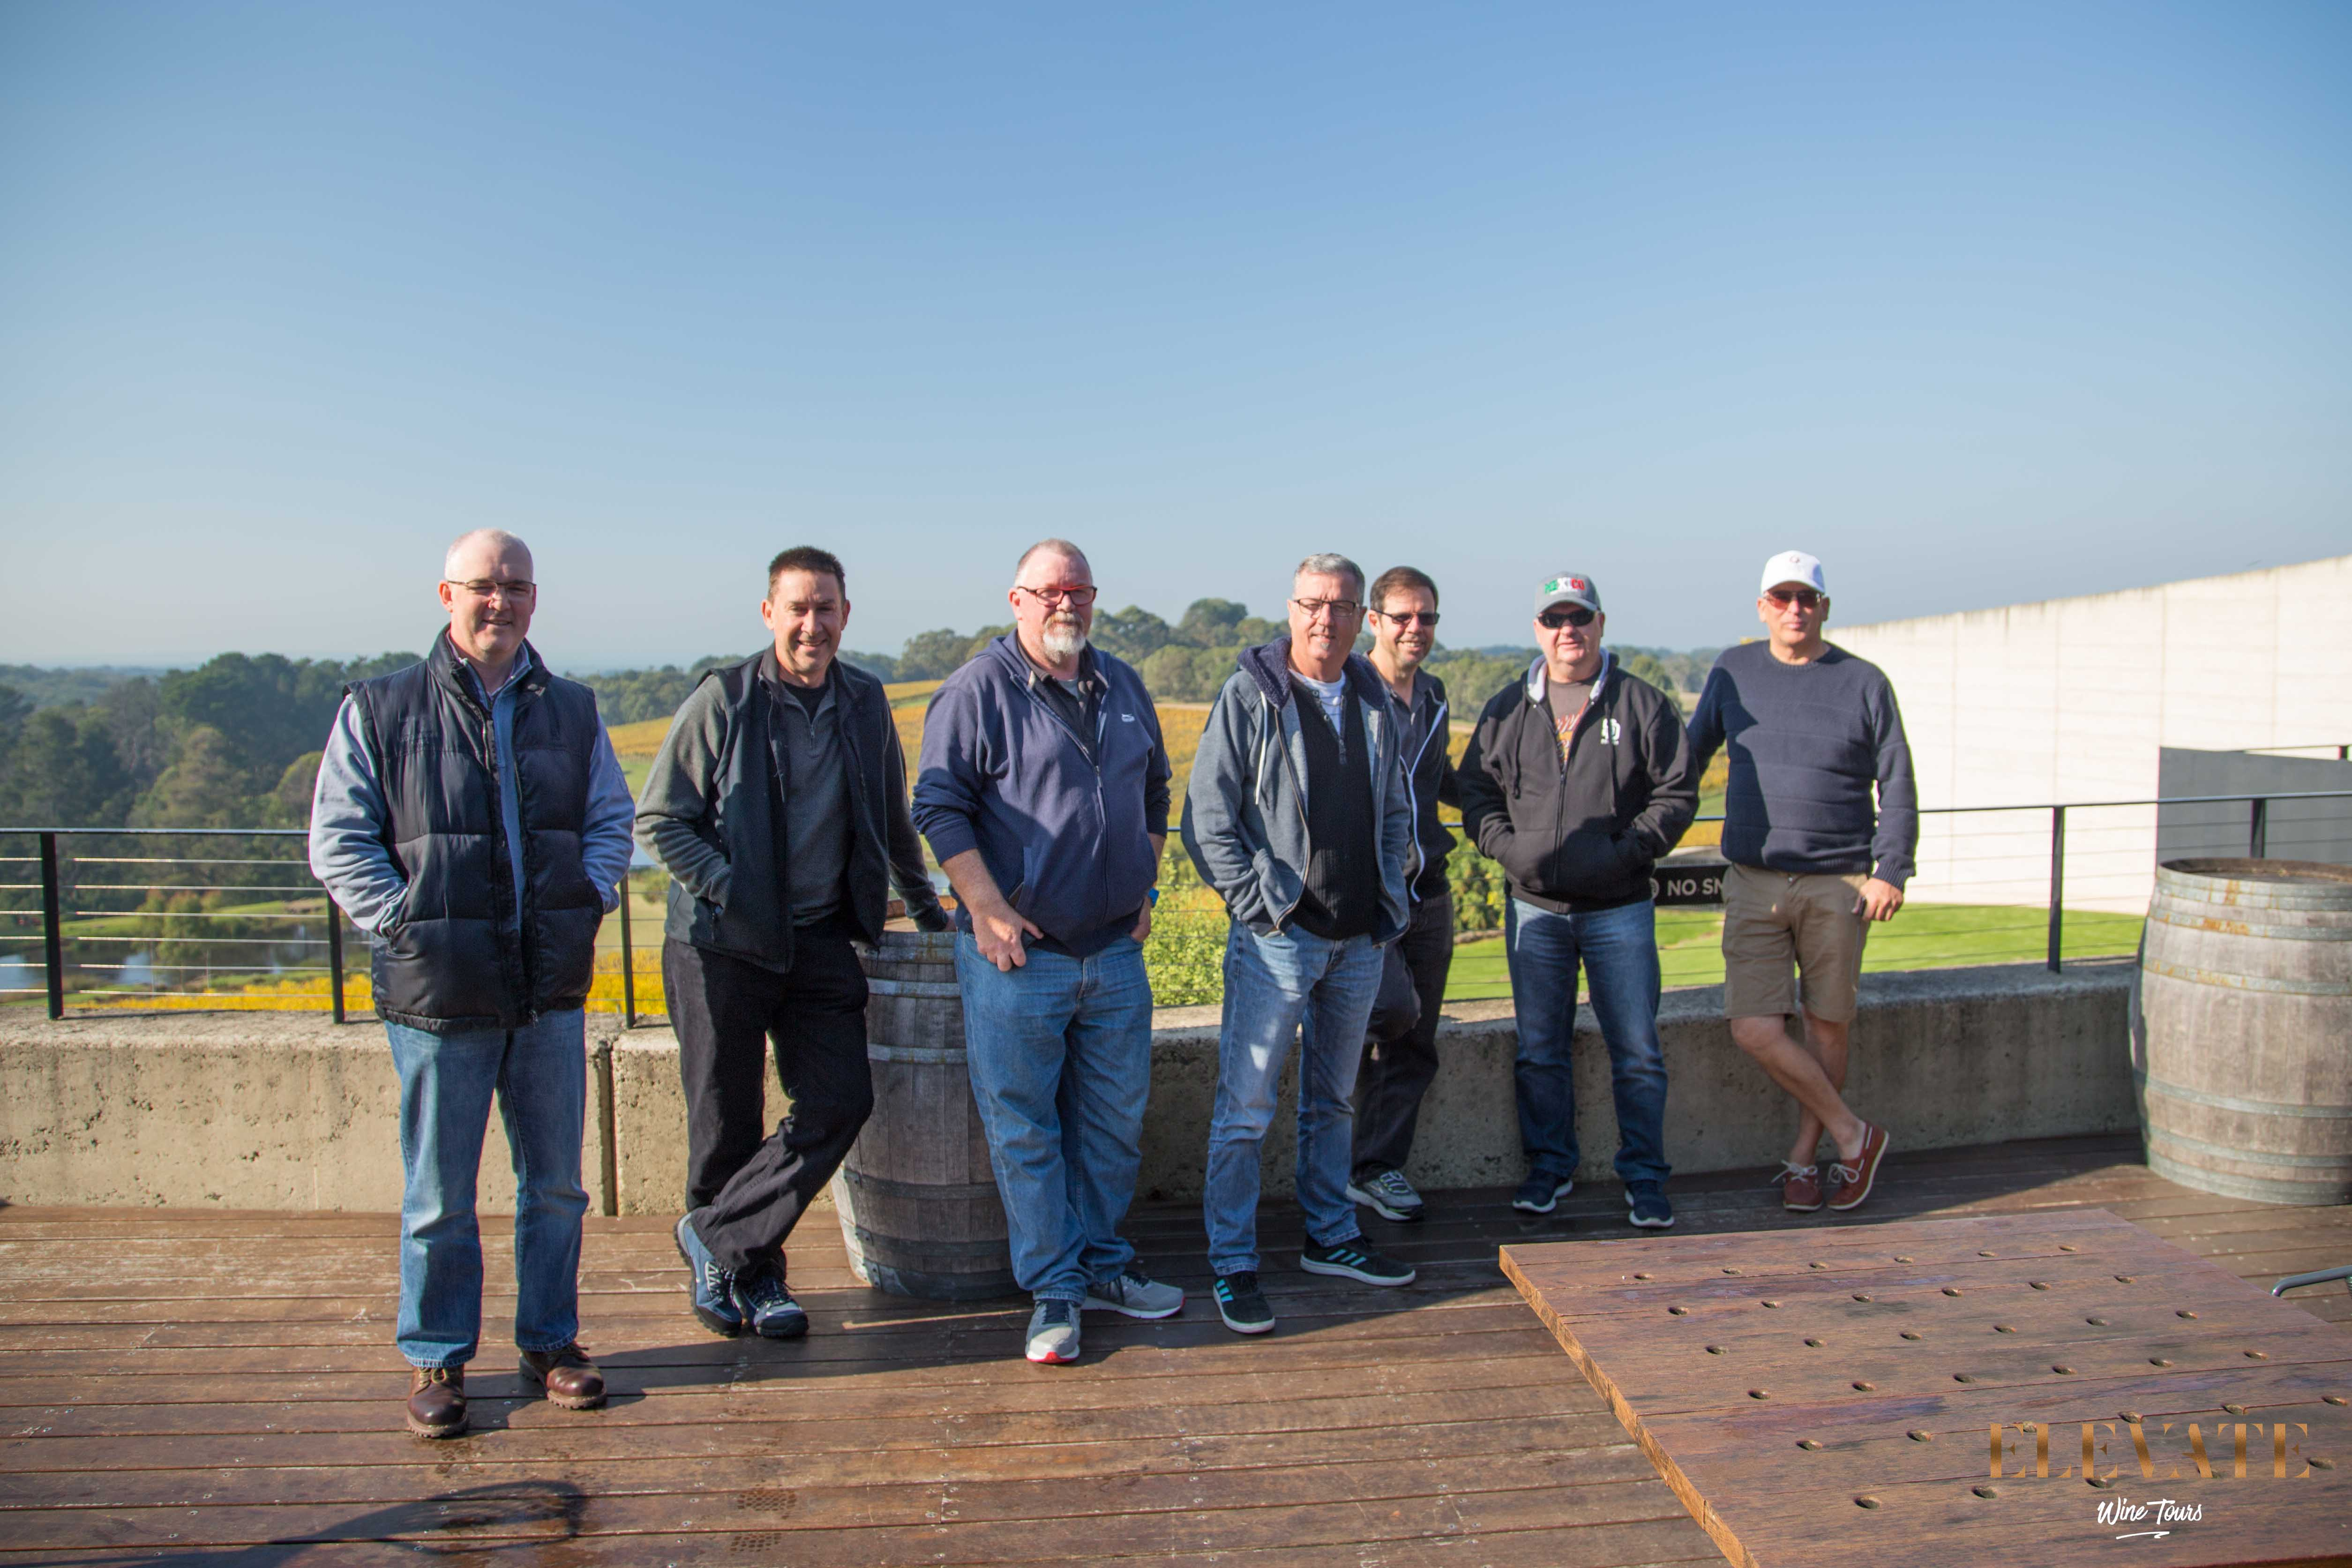 PORT-PHILLIP-ESTATE-WINERY-GROUP-PHOTO